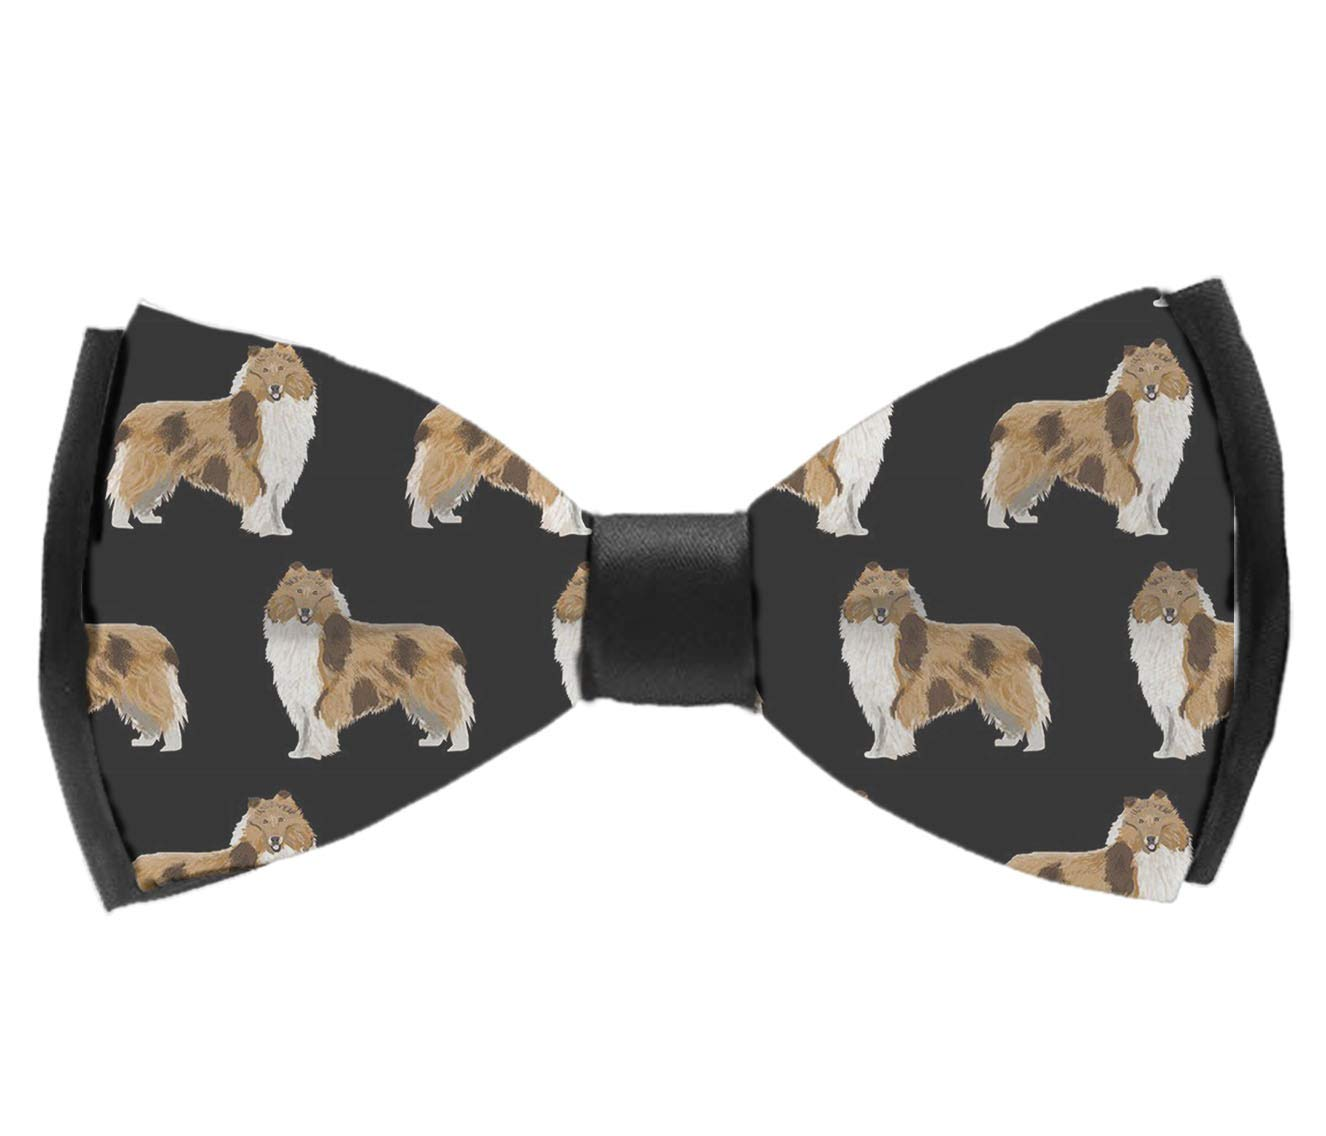 Adjustable Rough Collie Dog Bowtie for Wedding Holiday Party INWANZI Mens Fashion Pre-Tied Bow Tie